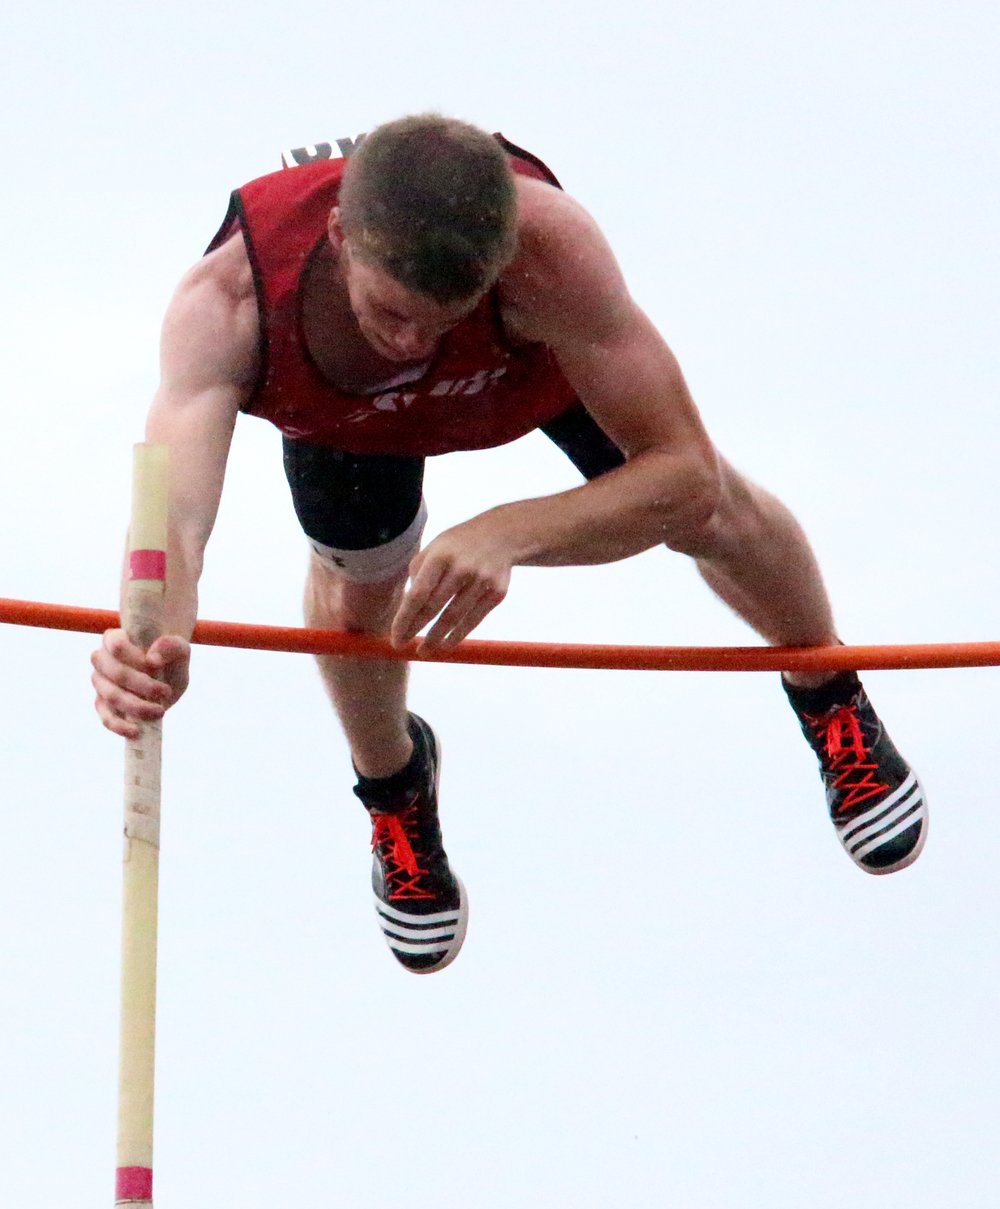 ROSS MARTIN/Citizen photo Park Hill's Chris Nilsen clears the bar in the pole vault competition during the 2015 Class 5 Missouri State Track and Field Championships at Dwight T. Reed Stadium in Jefferson City, Mo.